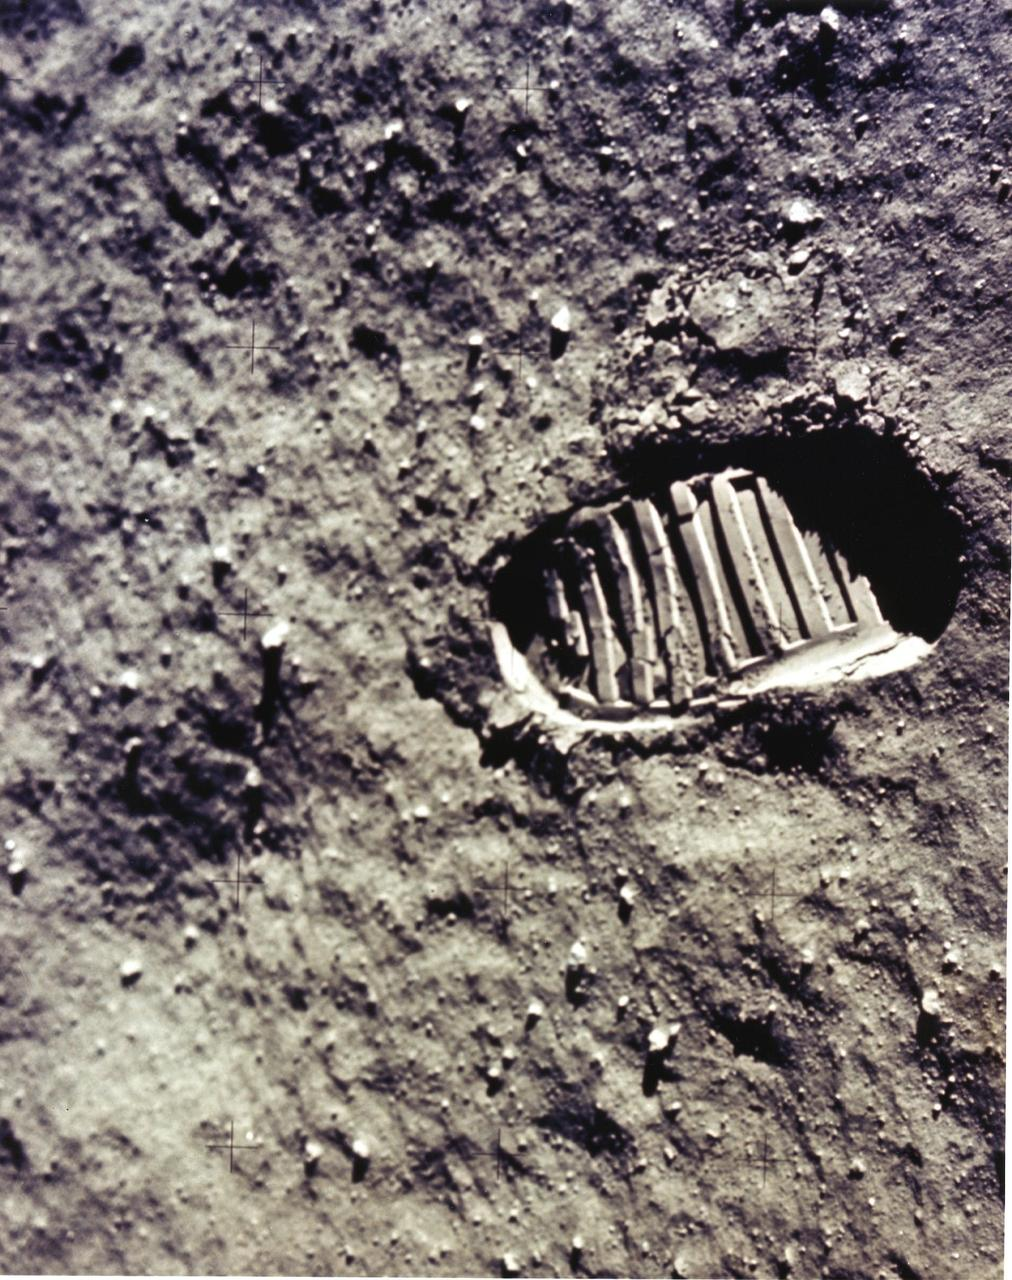 "This is a close-up view of an astronaut's footprint in the lunar soil, photographed by a 70 mm lunar surface camera during the Apollo 11 lunar surface extravehicular activity. The first manned lunar mission, the Apollo 11 launched aboard a Saturn V launch vehicle from the Kennedy Space Center, Florida on July 16, 1969 and safely returned to Earth on July 24, 1969. The 3-man crew aboard the flight consisted of Neil A, Armstrong, mission commander; Edwin E. Aldrin, Jr., Lunar Module Pilot; and Michael Collins, Command Module pilot. The LM landed on the moon's surface on July 20, 1969 in the region known as Mare Tranquilitatis (the Sea of Tranquility). Armstrong was the first human to ever stand on the lunar surface. As he stepped off the LM, Armstrong proclaimed, ""That's one small step for man, one giant leap for mankind"". He was followed by Edwin (Buzz) Aldrin, describing the lunar surface as Magnificent desolation. Astronaut Collins piloted the Command Module in a parking orbit around the Moon. The crew collected 47 pounds of lunar surface material which was returned to Earth for analysis. The surface exploration was concluded in 2½ hours. With the success of Apollo 11, the national objective to land men on the Moon and return them safely to Earth had been accomplished. The Saturn V vehicle was developed by the Marshall Space Flight Center (MSFC) under the direction of Dr. von Braun."